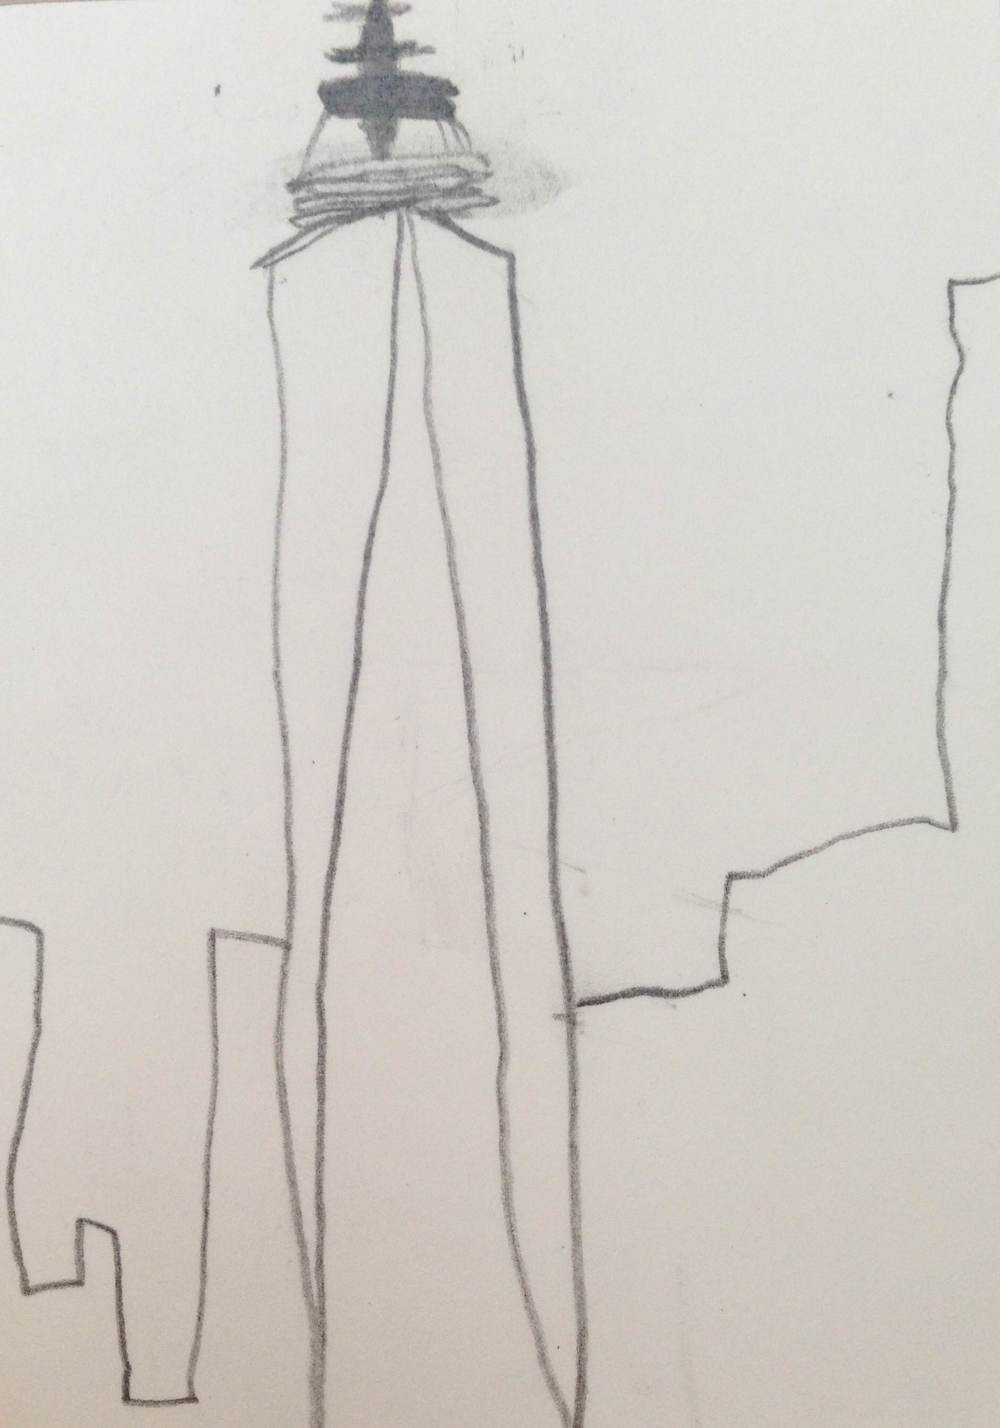 "In the art studio, 4th and 5th graders have been considering what inspires them in the everyday. One student drew the WTC Freedom Tower. Its form and height also inspire our Kindergartners. One Kindergarten student called it ""the building w  here the two buildings used to be."" This drawing is now hanging on the 6th floor amongst other thoughts and drawings that inspire us."